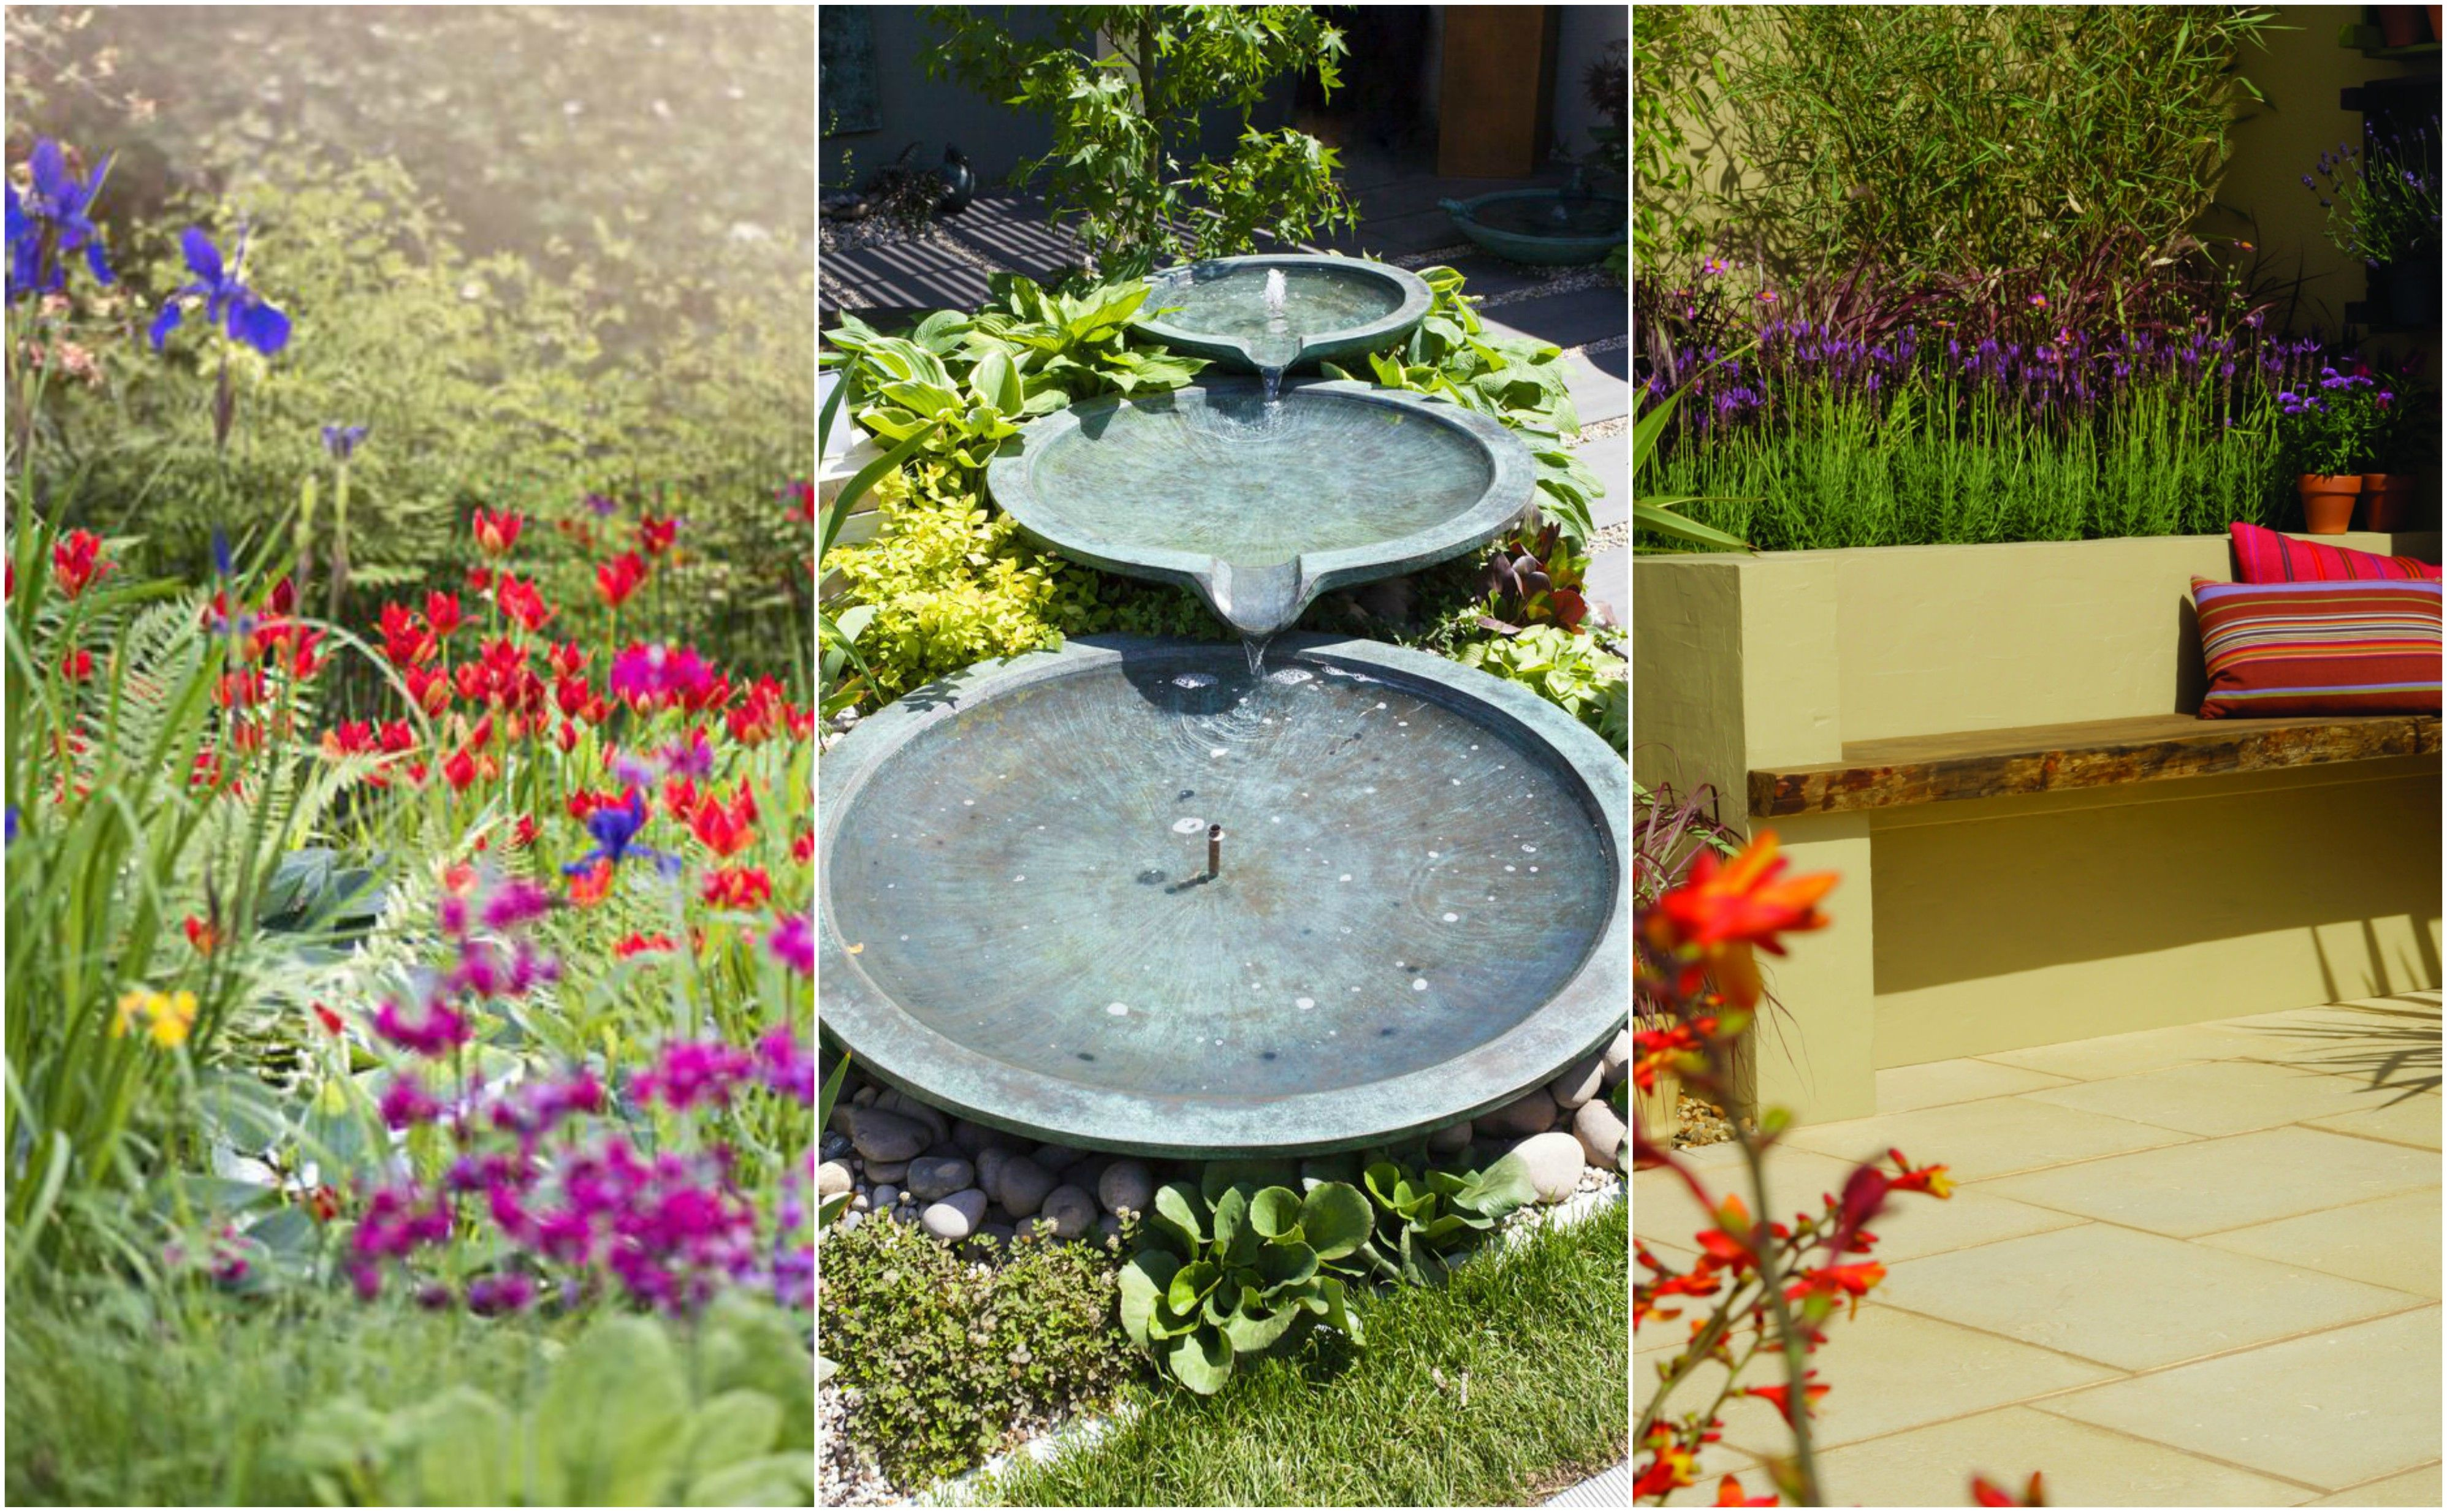 Top 10 Garden Design Ideas To Make The Best Of Your Outdoor Space - Design-gardens-ideas